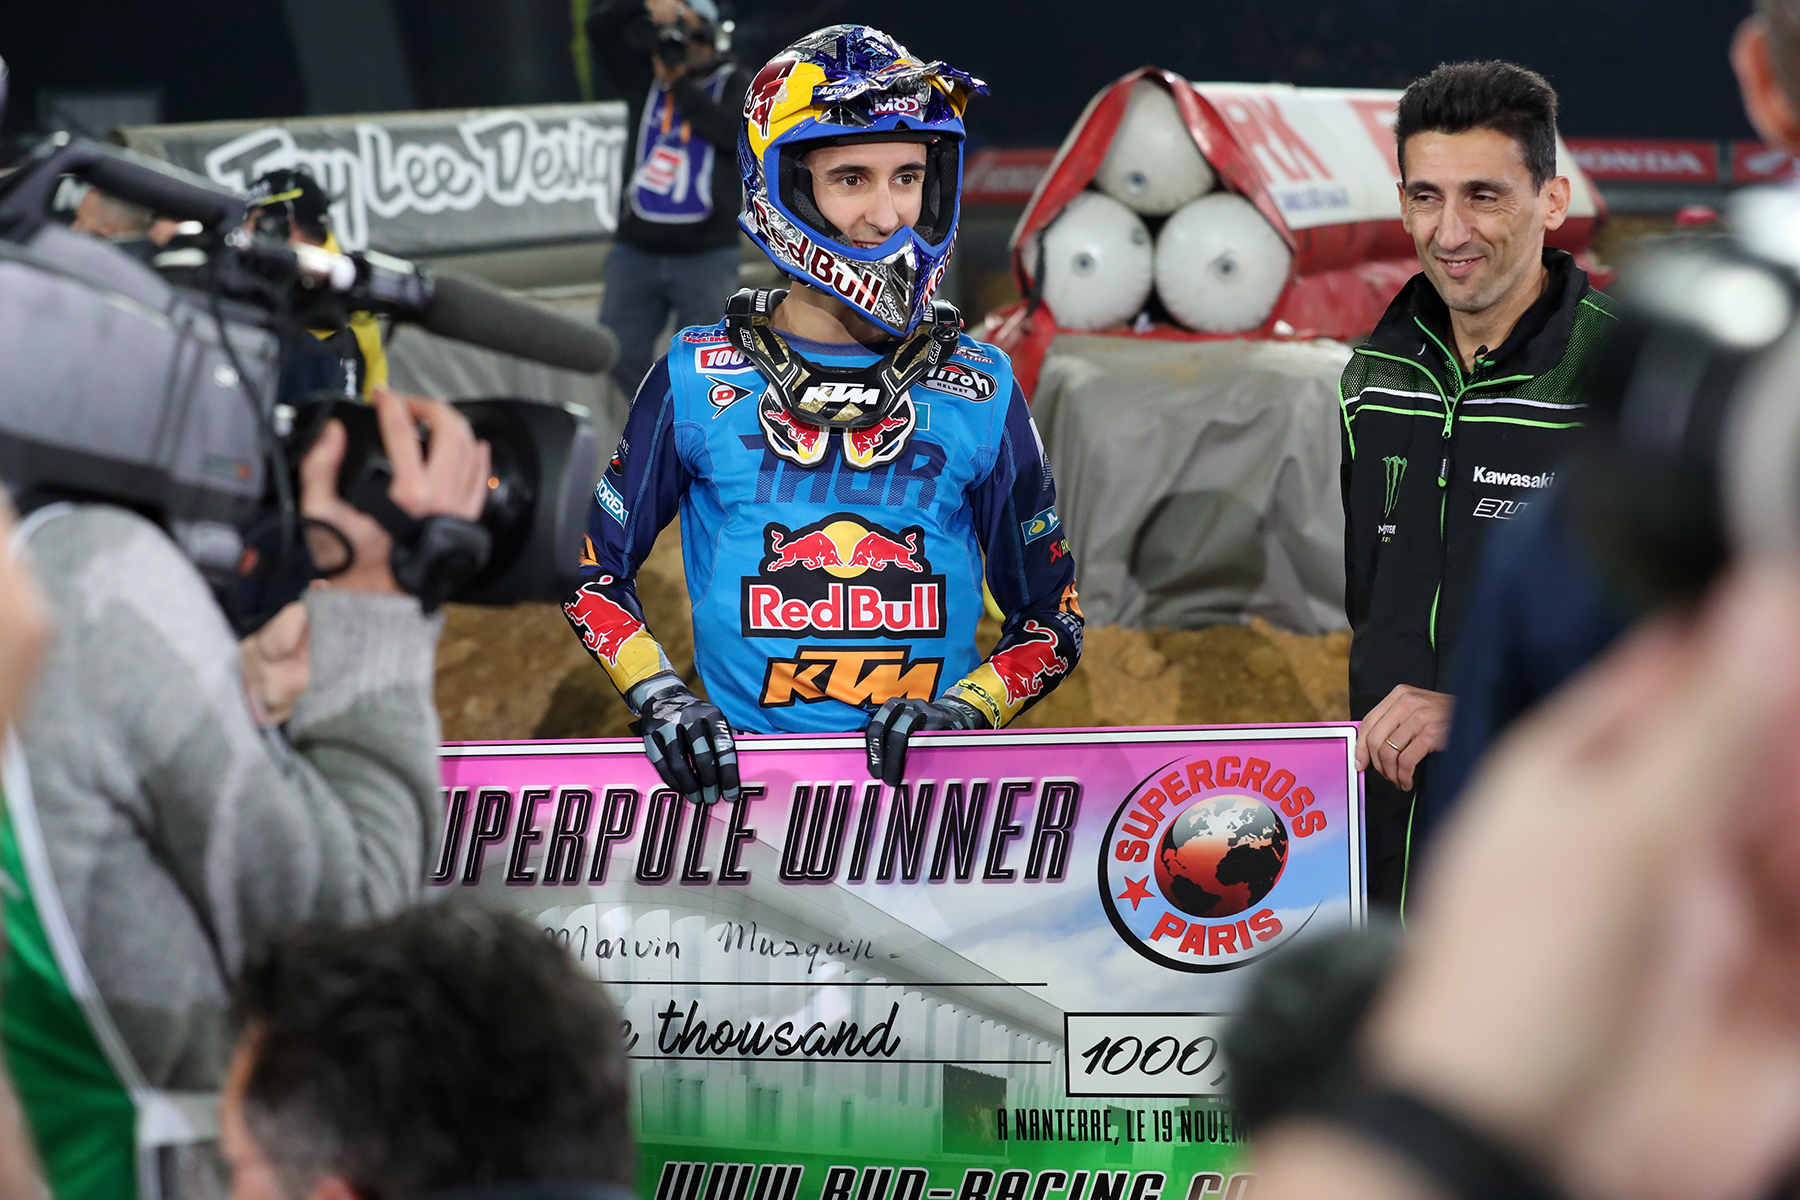 For a second straight year, Musquin won King of Paris.